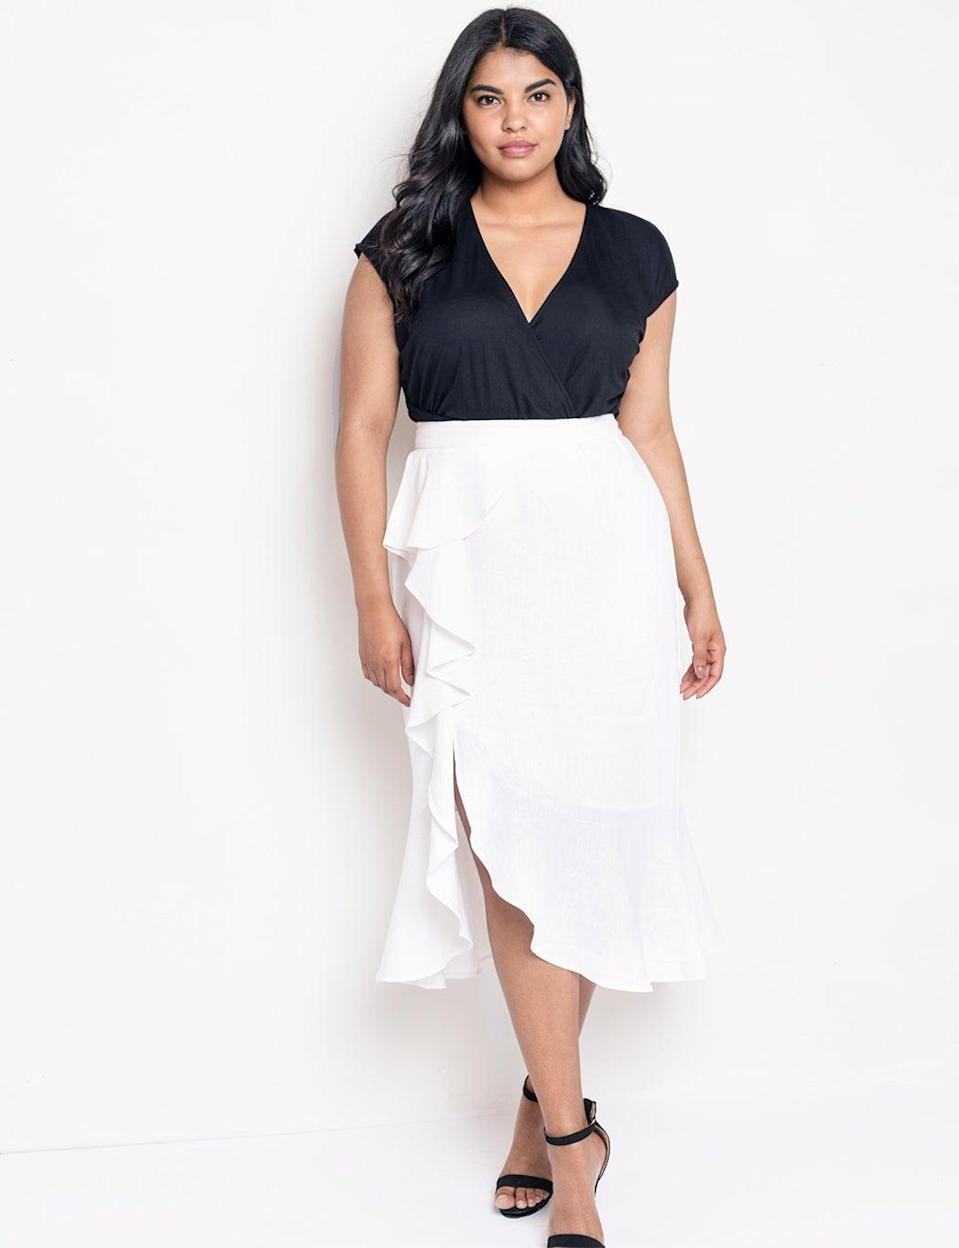 """Eloquii — our go-to plus-size retailer — doesn't disappoint on the flax front, with a host of summer-ready separates rendered in our favorite fiber. We're particularly partial to the swingy spirit of this ruffled wrap-effect skirt. <br><br><em>Shop linen at <strong><a href=""""https://www.eloquii.com/on/demandware.store/Sites-eloquii-Site/default/Search-Show?q=linen&suggest_search="""" rel=""""nofollow noopener"""" target=""""_blank"""" data-ylk=""""slk:Eloquii"""" class=""""link rapid-noclick-resp"""">Eloquii</a></strong></em><br><br><strong>Eloquii</strong> Cascade Ruffle Skirt with Slit, $, available at <a href=""""https://go.skimresources.com/?id=30283X879131&url=https%3A%2F%2Fwww.eloquii.com%2Fcascade-ruffle-skirt-with-slit%2F1206042.html%3Fdwvar_1206042_colorCode%3D1"""" rel=""""nofollow noopener"""" target=""""_blank"""" data-ylk=""""slk:Eloquii"""" class=""""link rapid-noclick-resp"""">Eloquii</a><br><br>"""